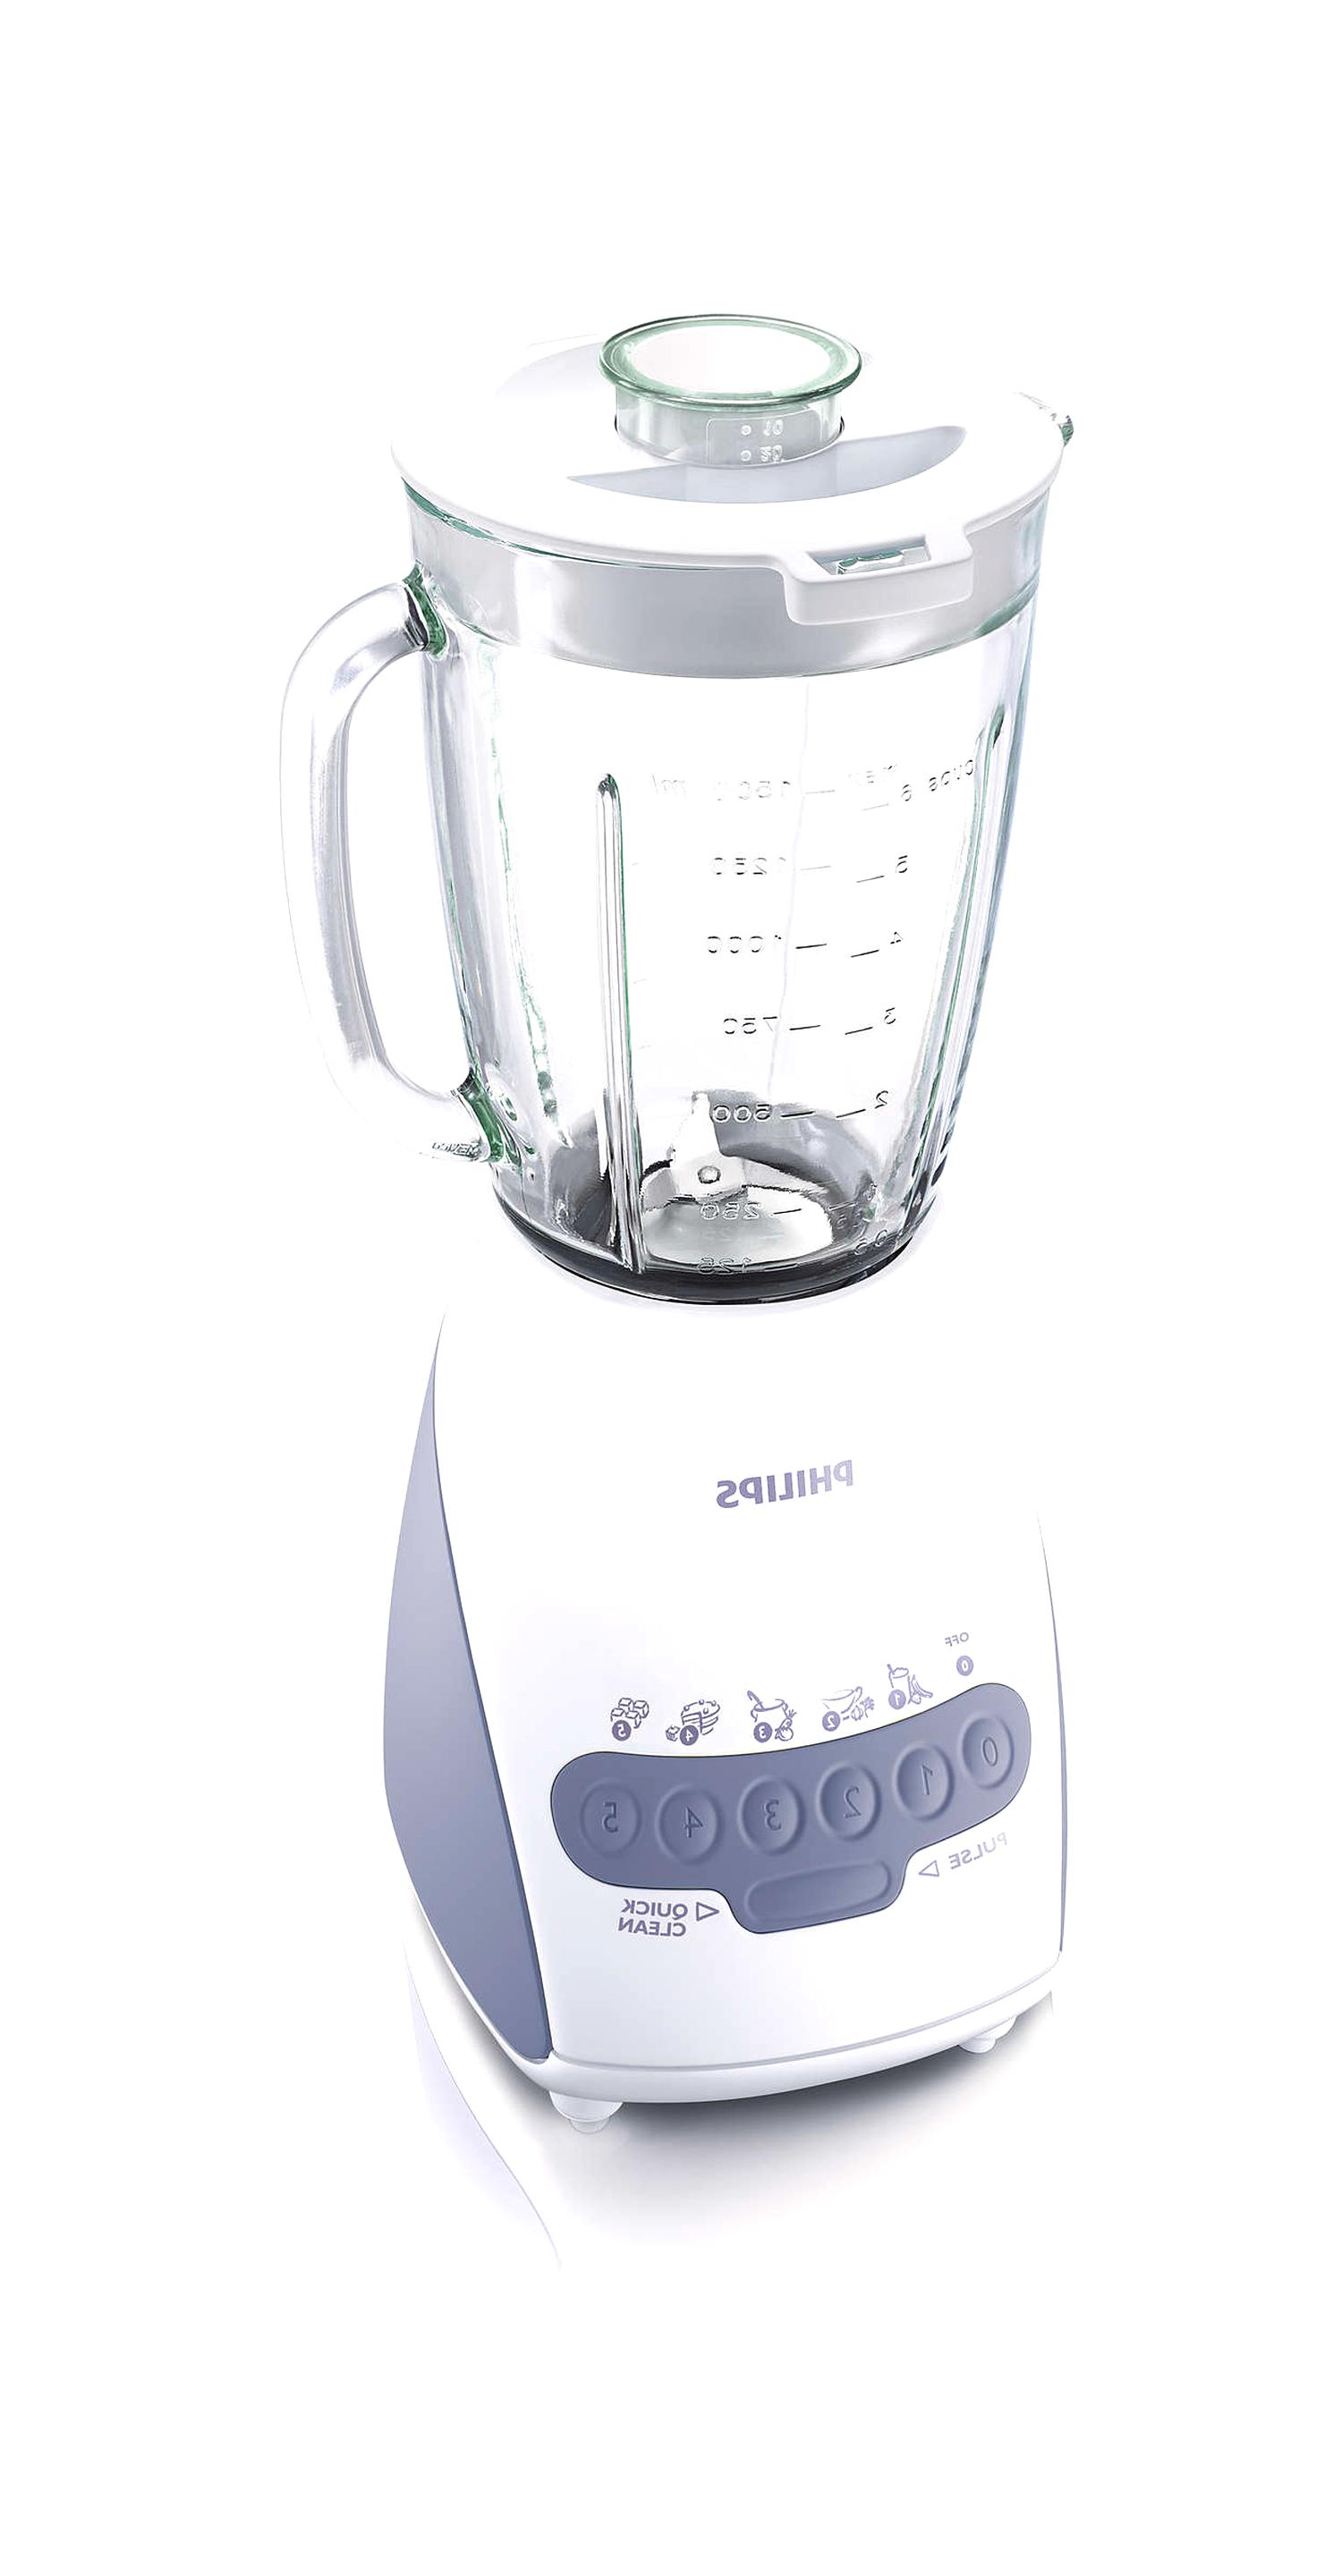 blender philips d'occasion